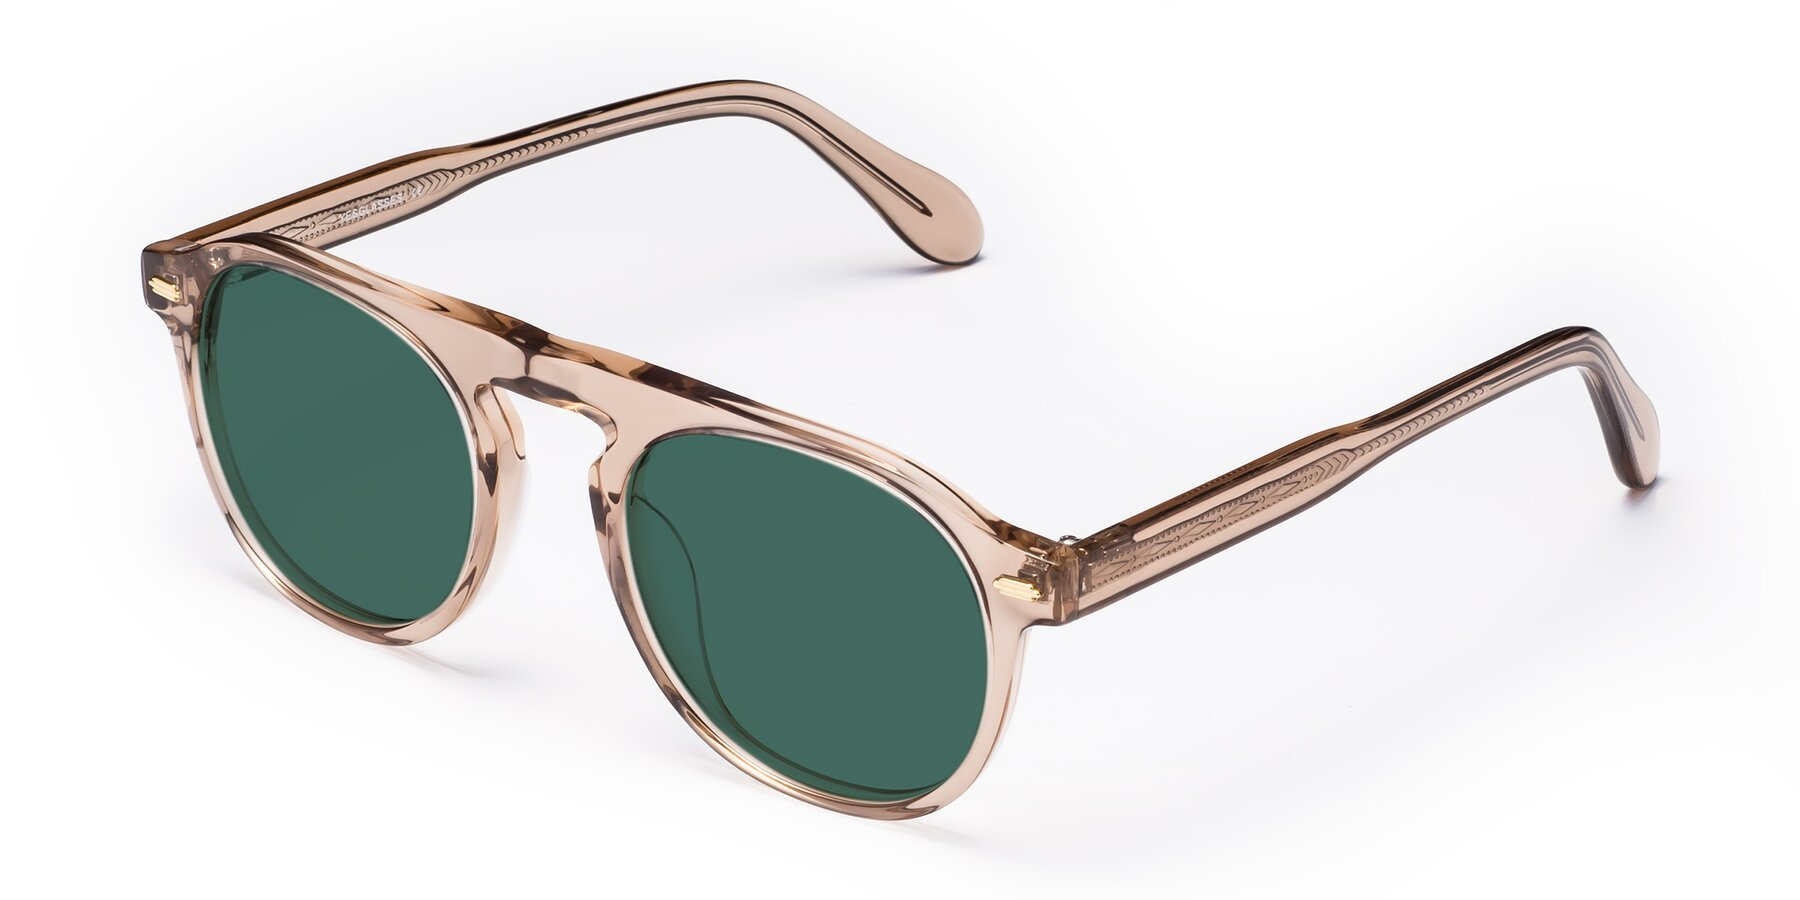 Angle of Mufasa in light Brown with Green Polarized Lenses